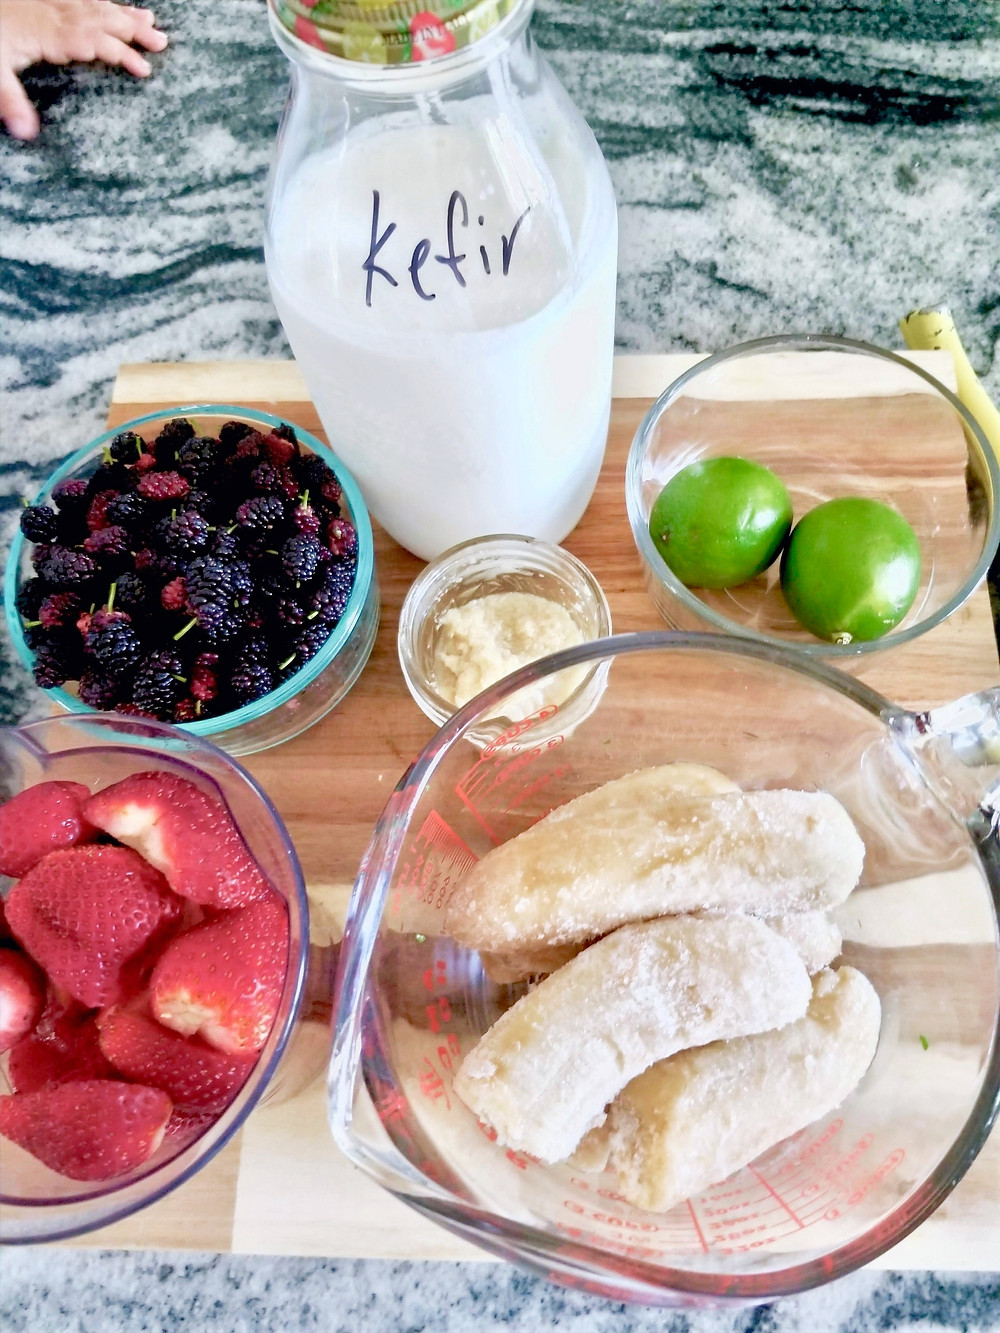 Ingredients to make a mulberry smoothie: mulberries, strawberries, bananas, lime, kefir, and ginger puree